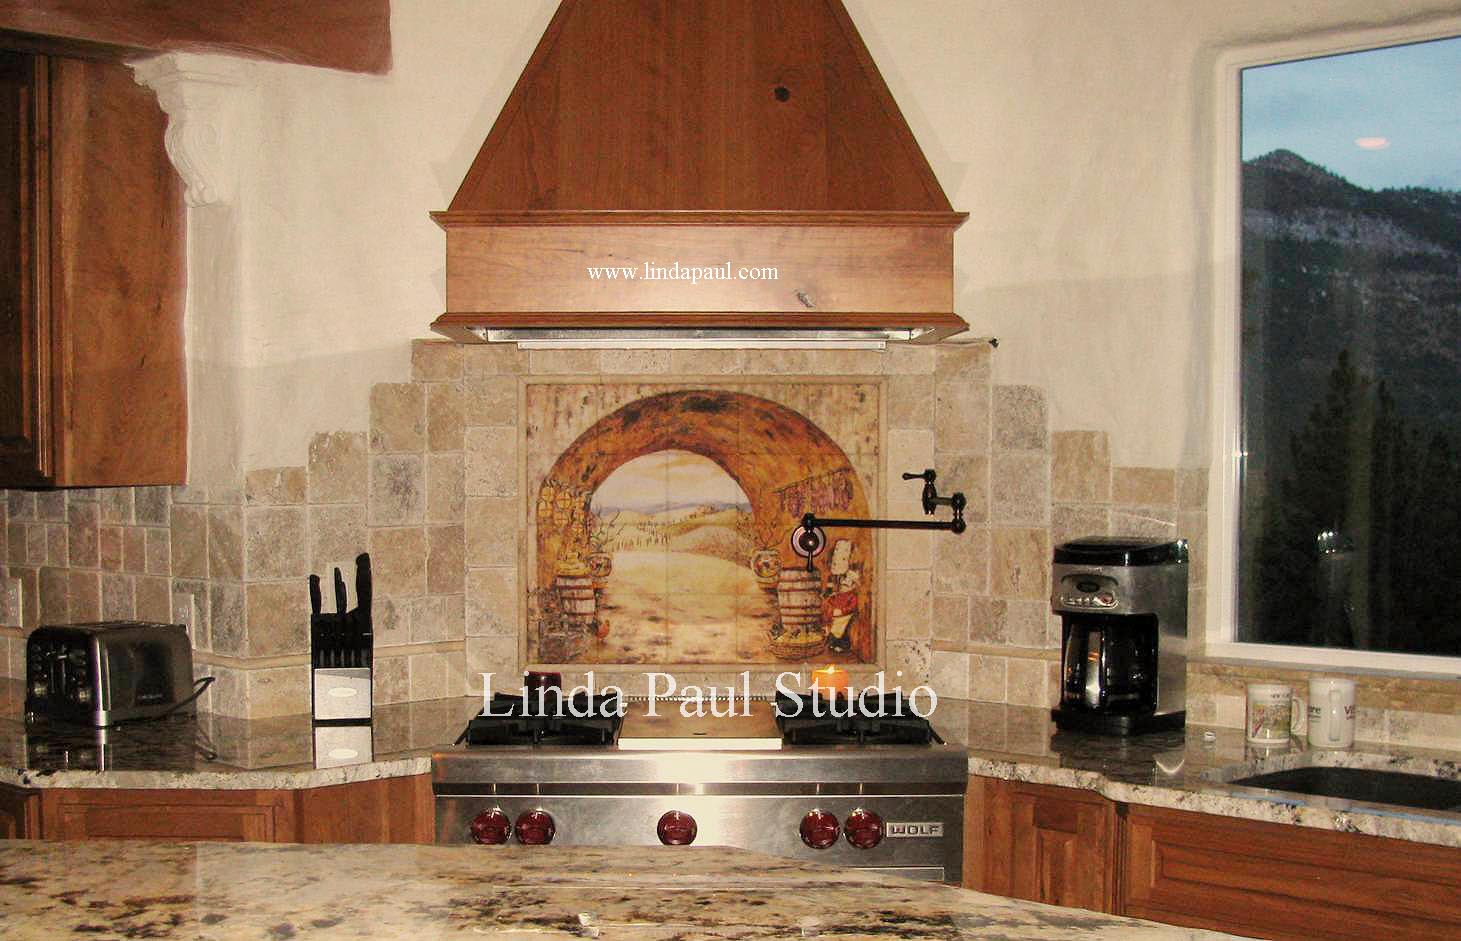 tile Backsplash ideas backsplashes kitchen backsplash Everything tuscany Kitchen backsplash ideas and Installation